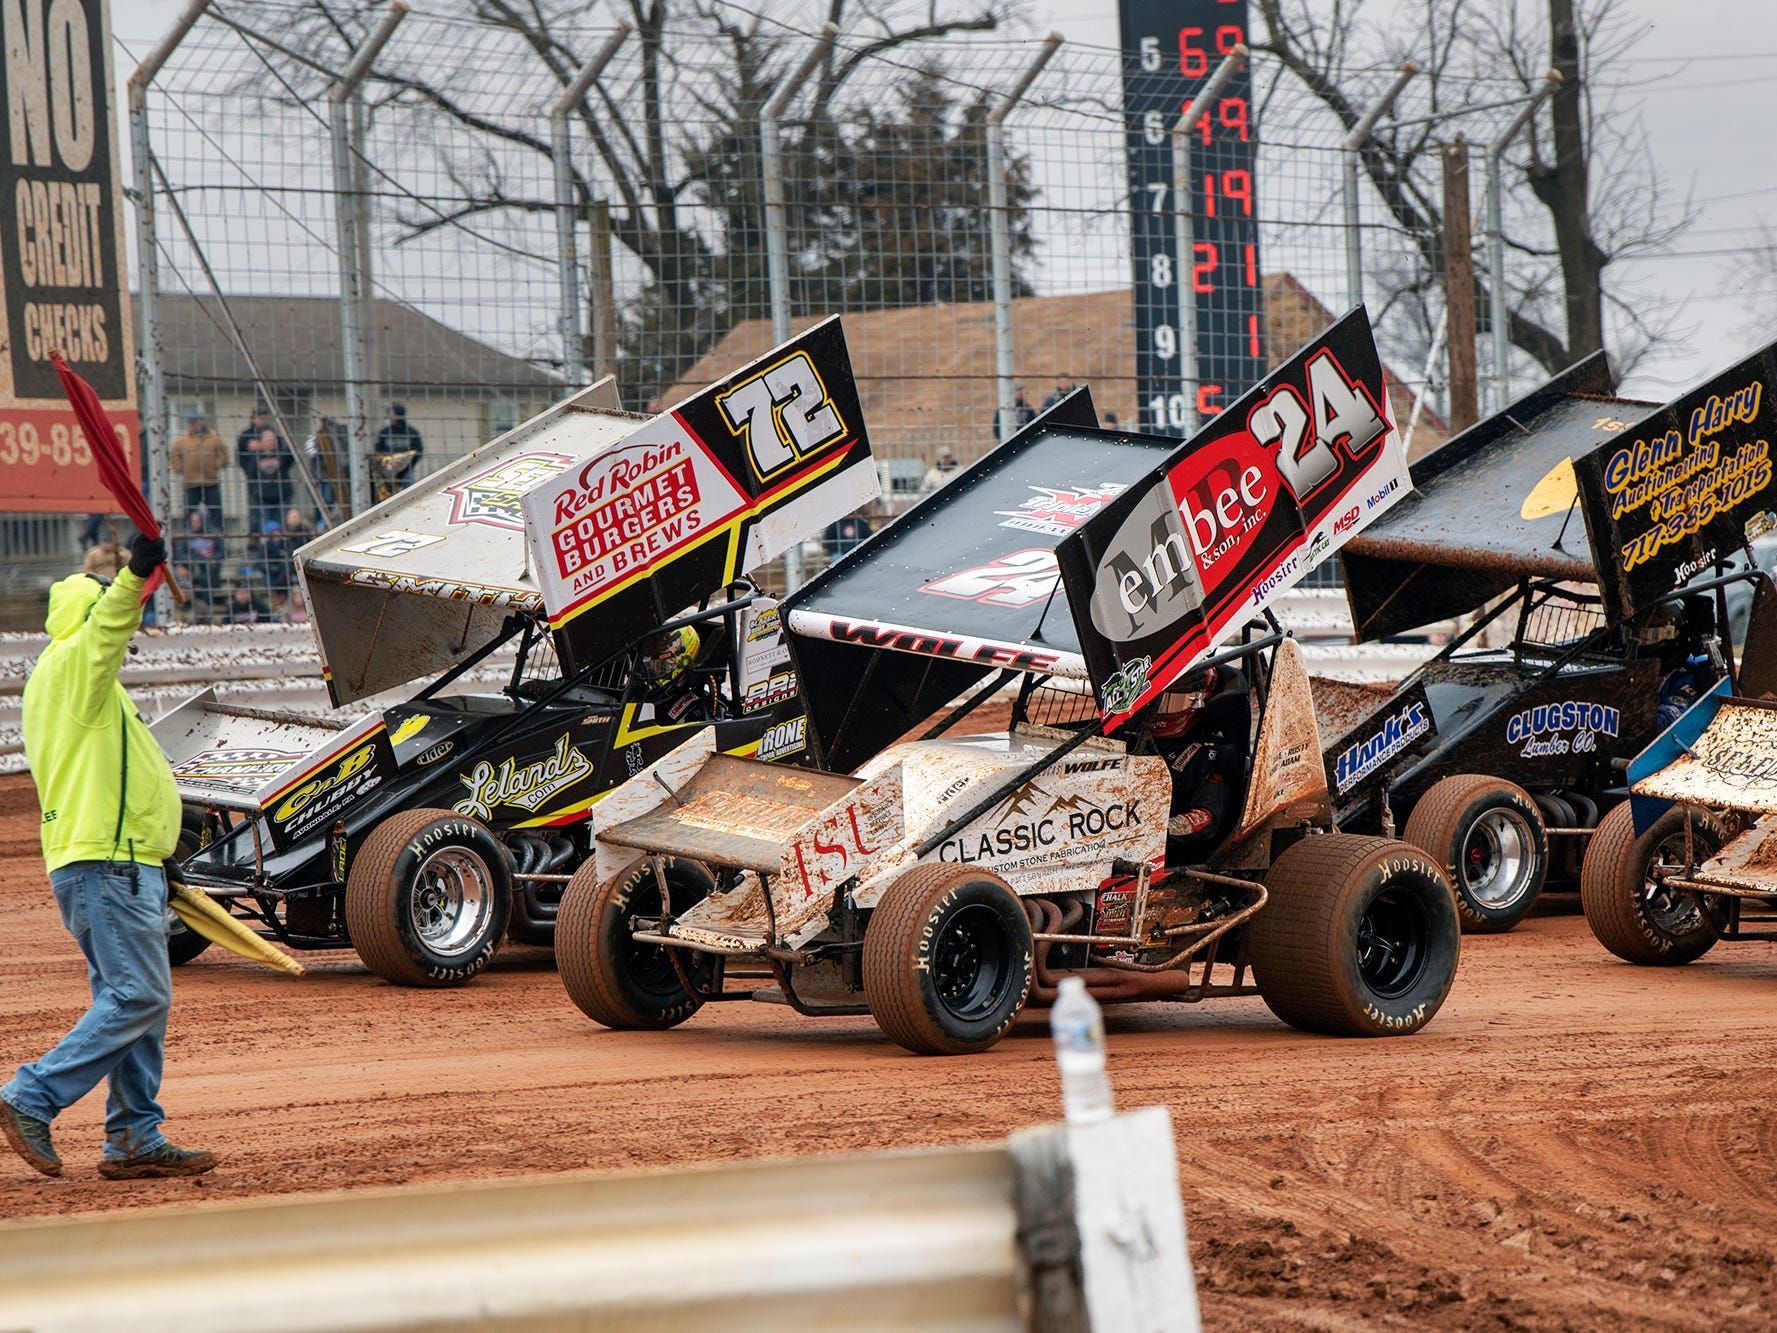 A crewman signals a red flag as cars circle the track during the Lincoln Speedway Ice Breaker 30 on Sunday near Abbottstown.